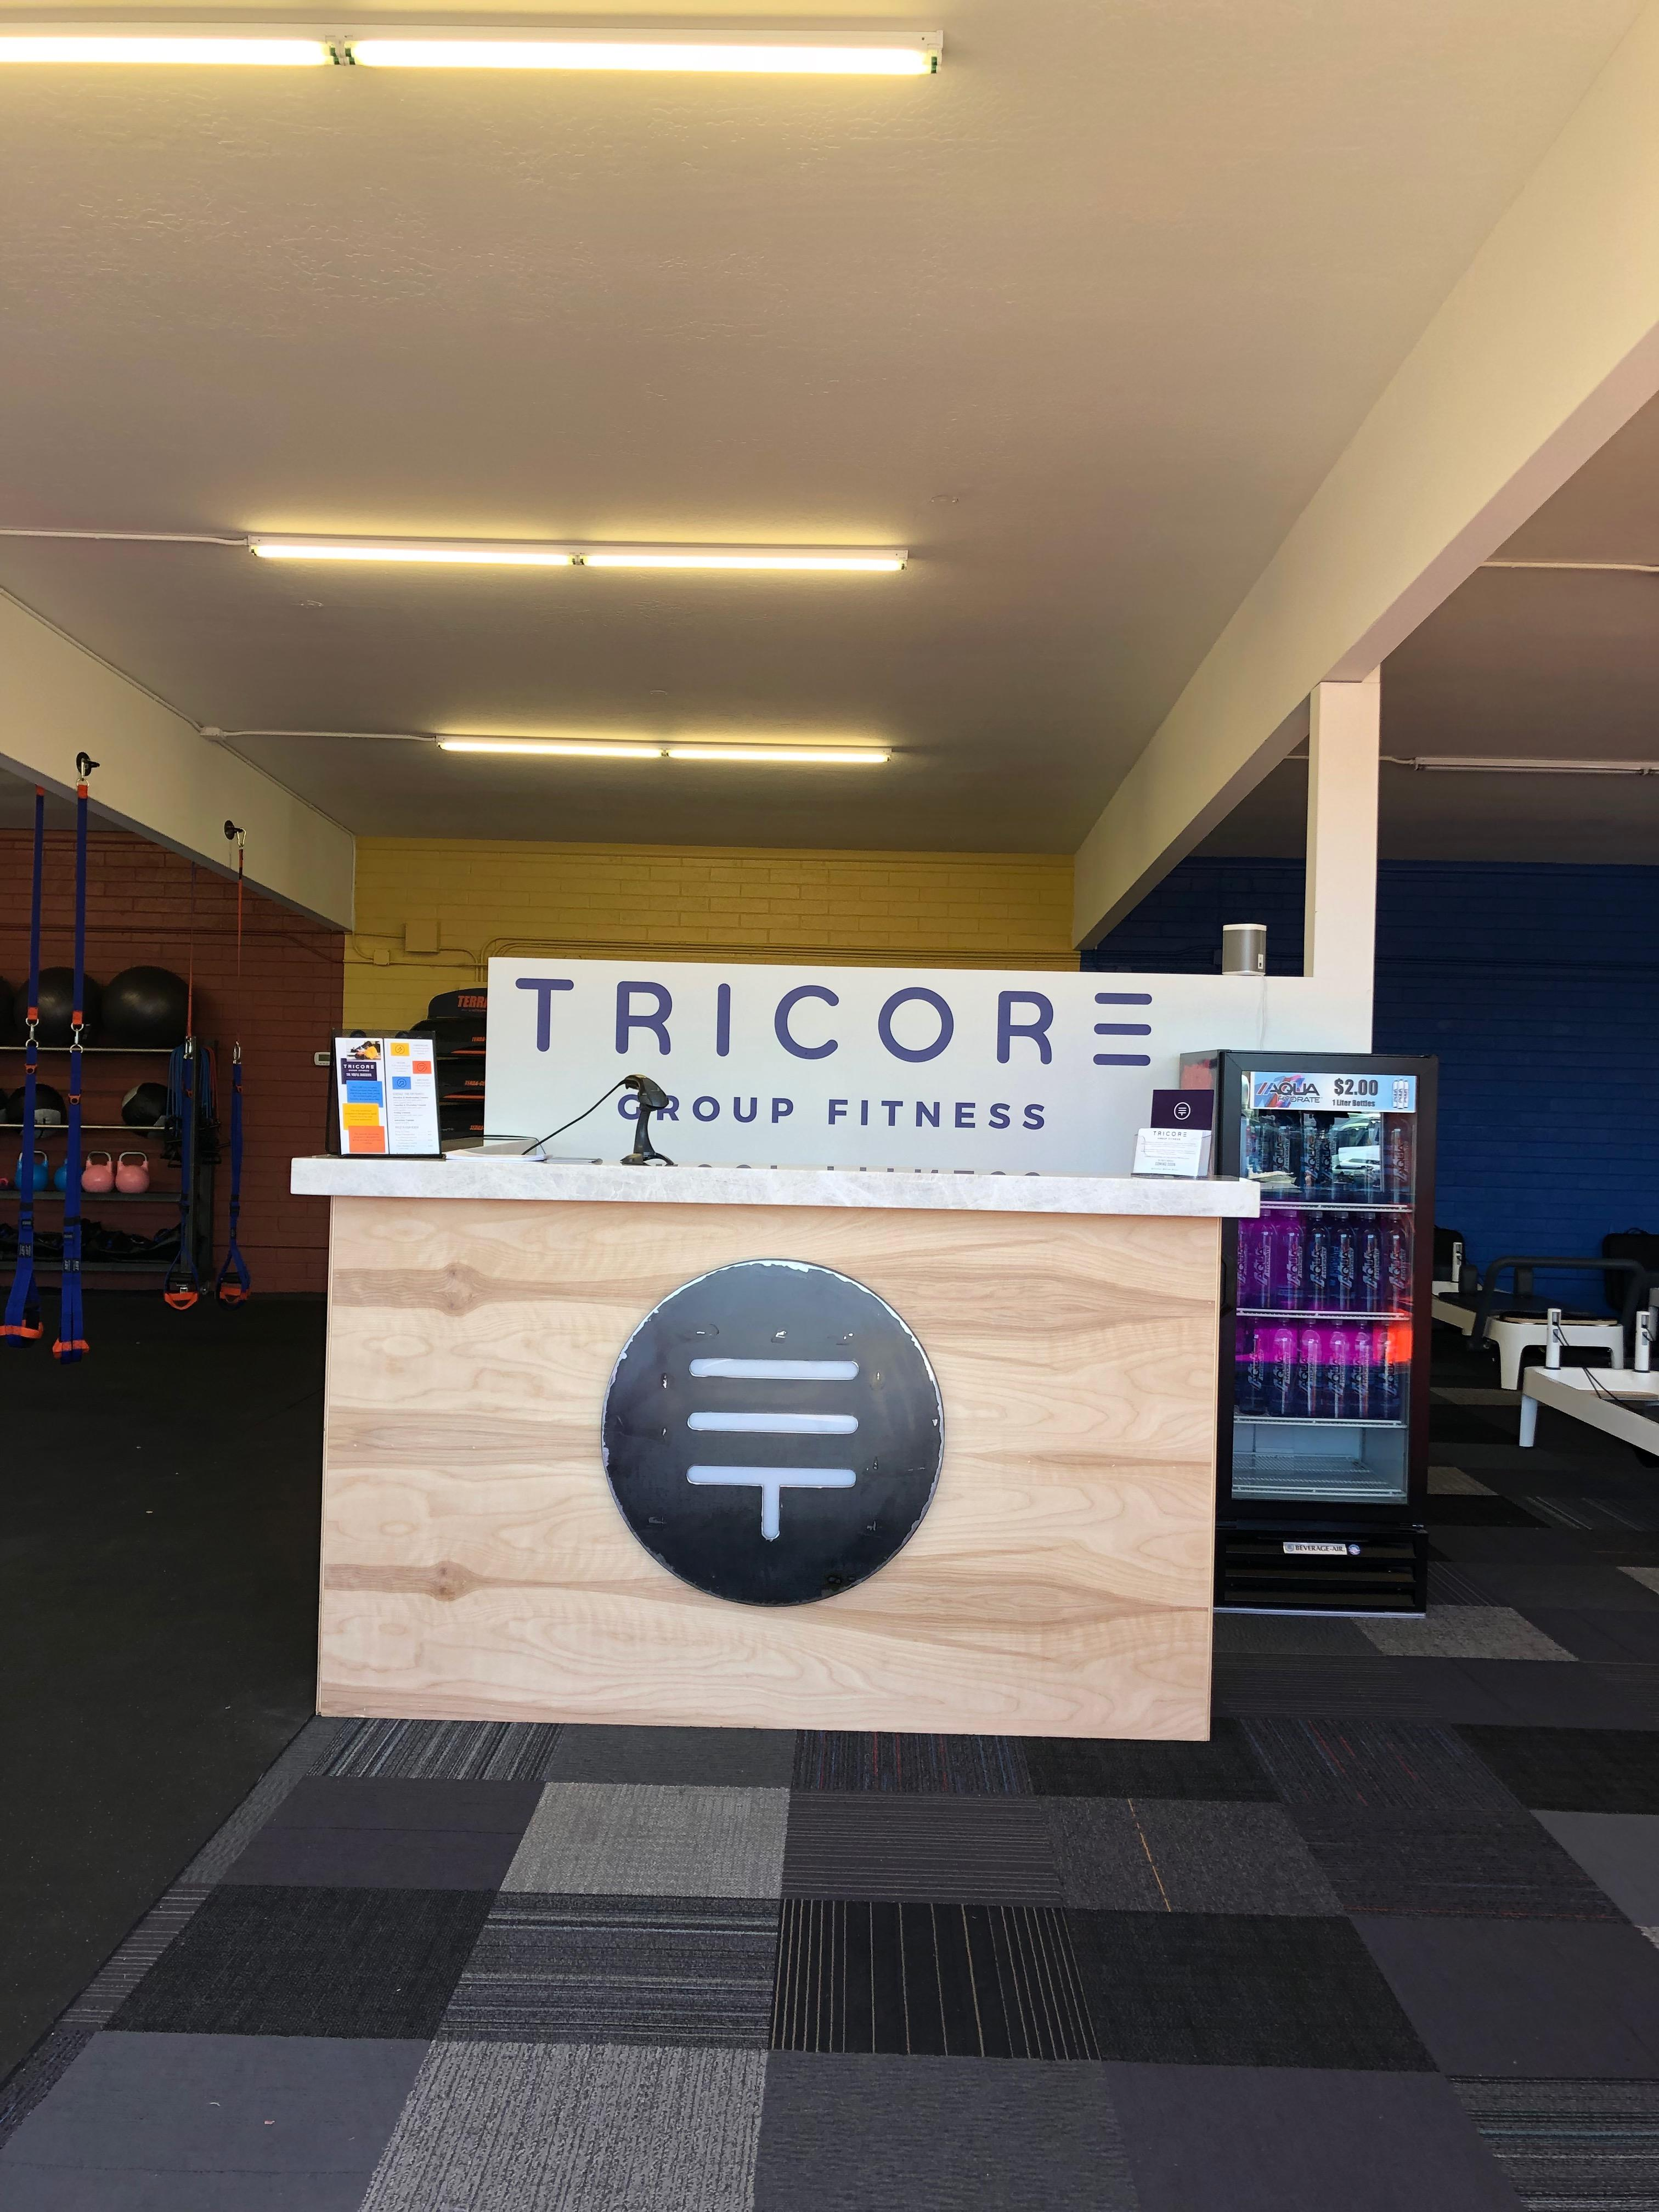 TriCore Fitness image 3